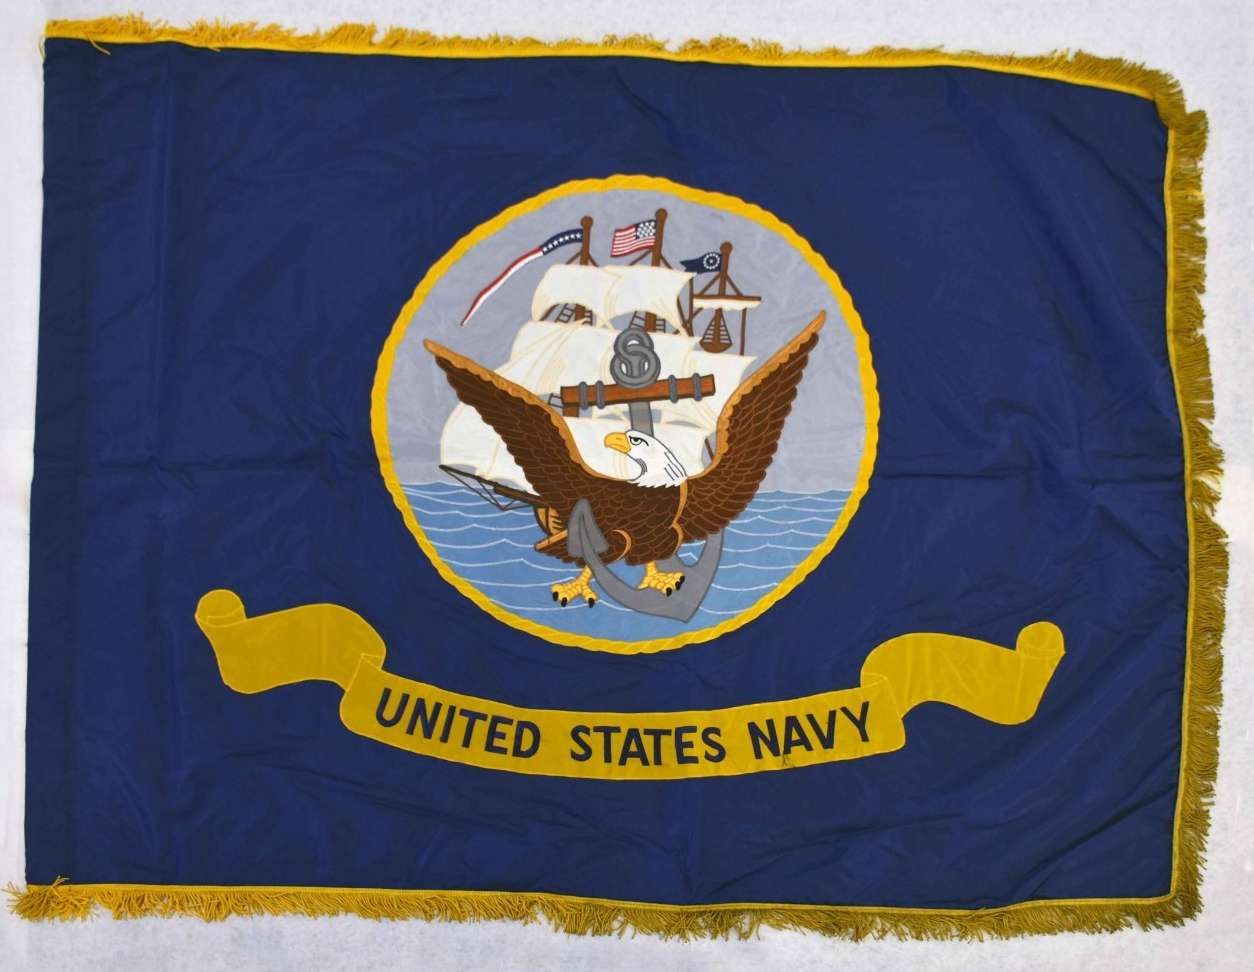 "<p>One US Navy flag. The flag is rectangular-shaped blue nylon edged with gold fringe. At the center of the flag is the seal of the US Navy with the eagle, anchor, and sailing ship above a banner with the words ""United States Navy."" There are smoke stains on the bottom right corner of the fly.</p>"